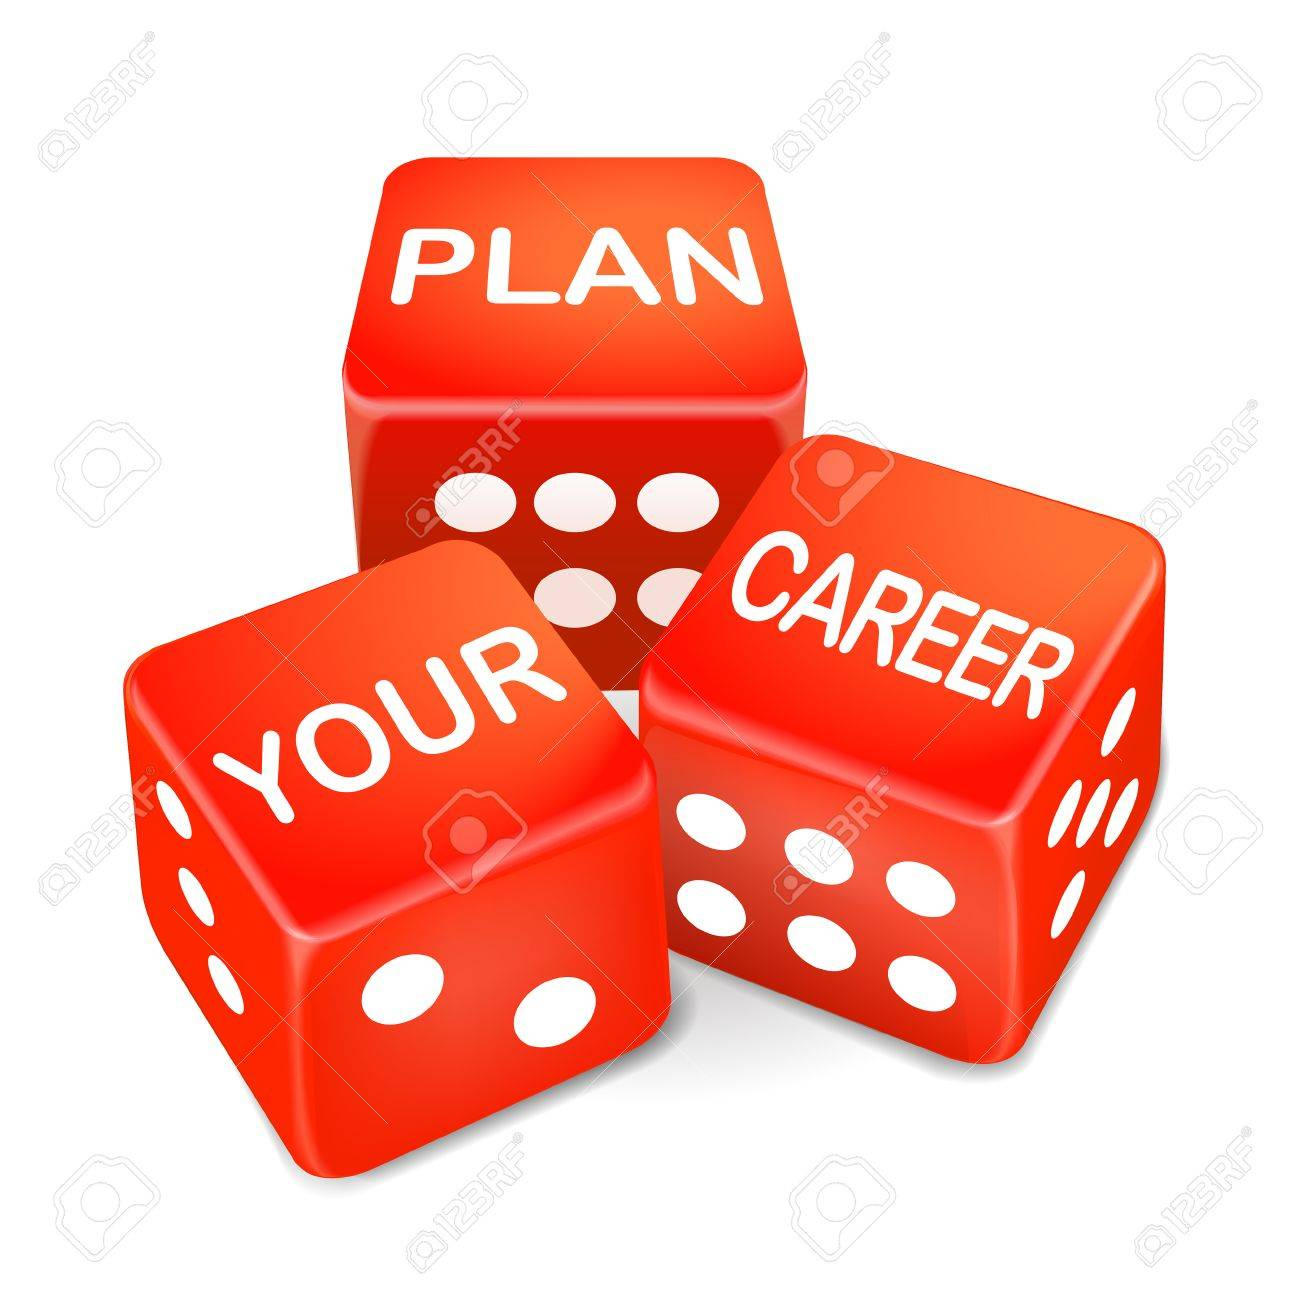 career plan images stock pictures royalty career plan career plan plan your career words on three red dice over white background